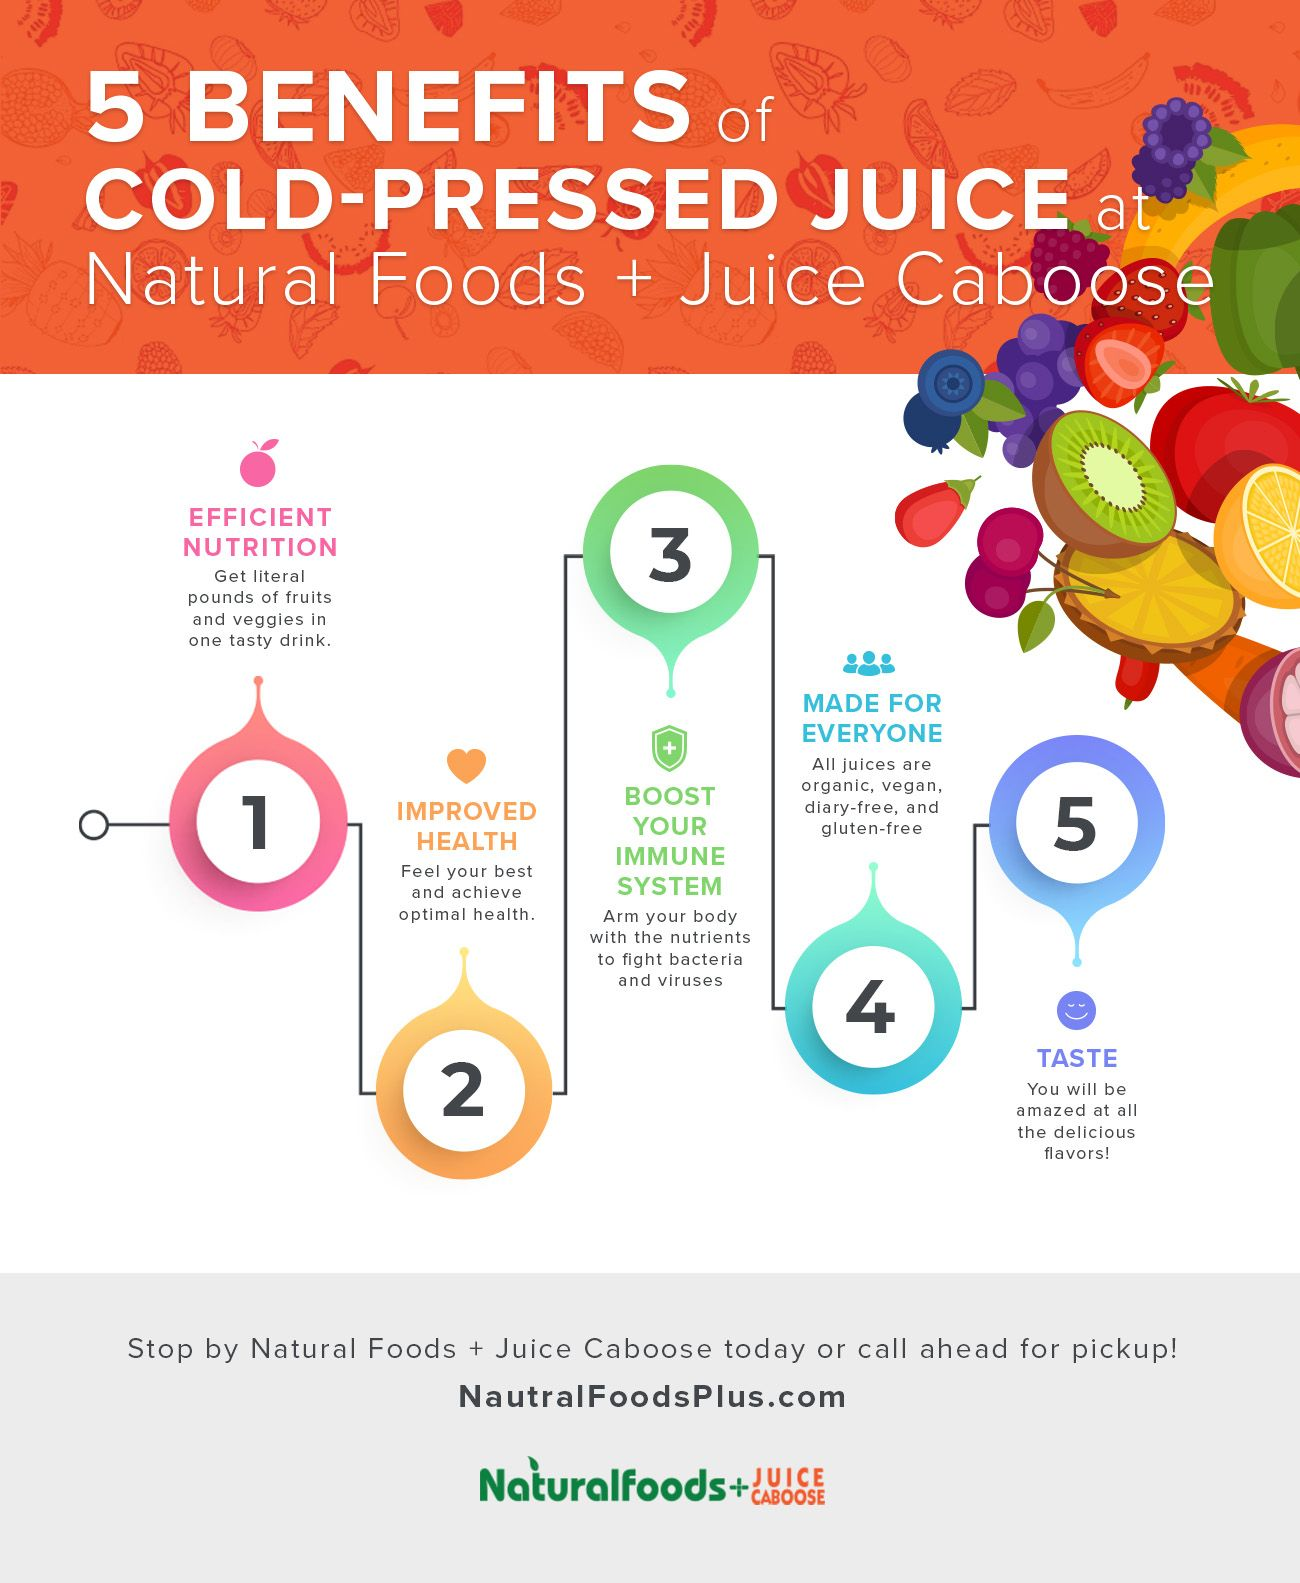 5 benefits of cold-pressed infographic.jpg